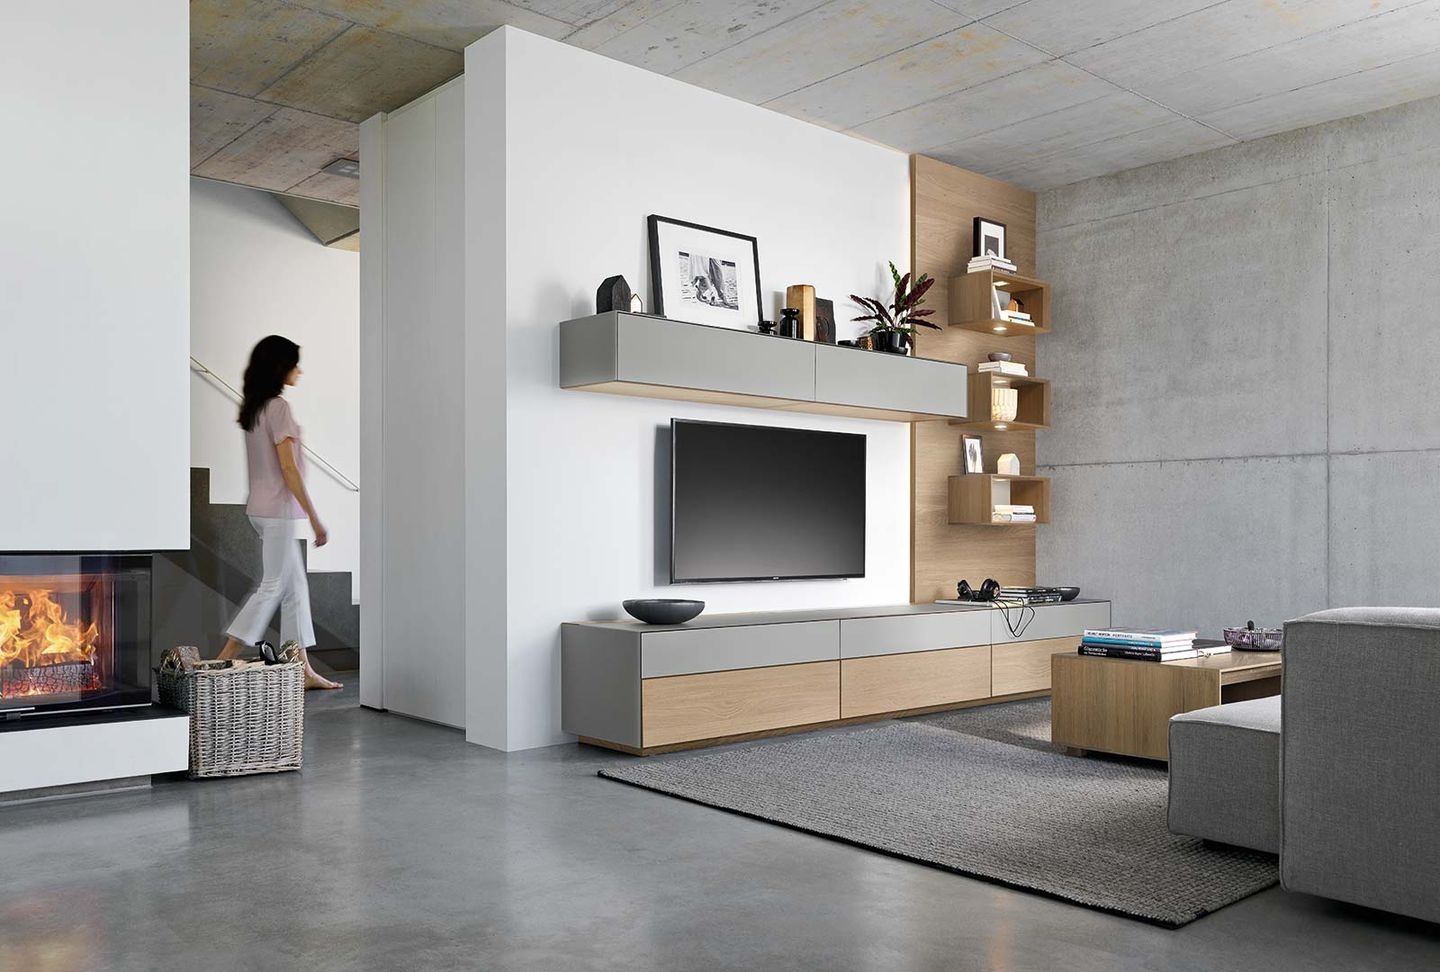 cubus pure wall unit made of solid wood with flexible design elements